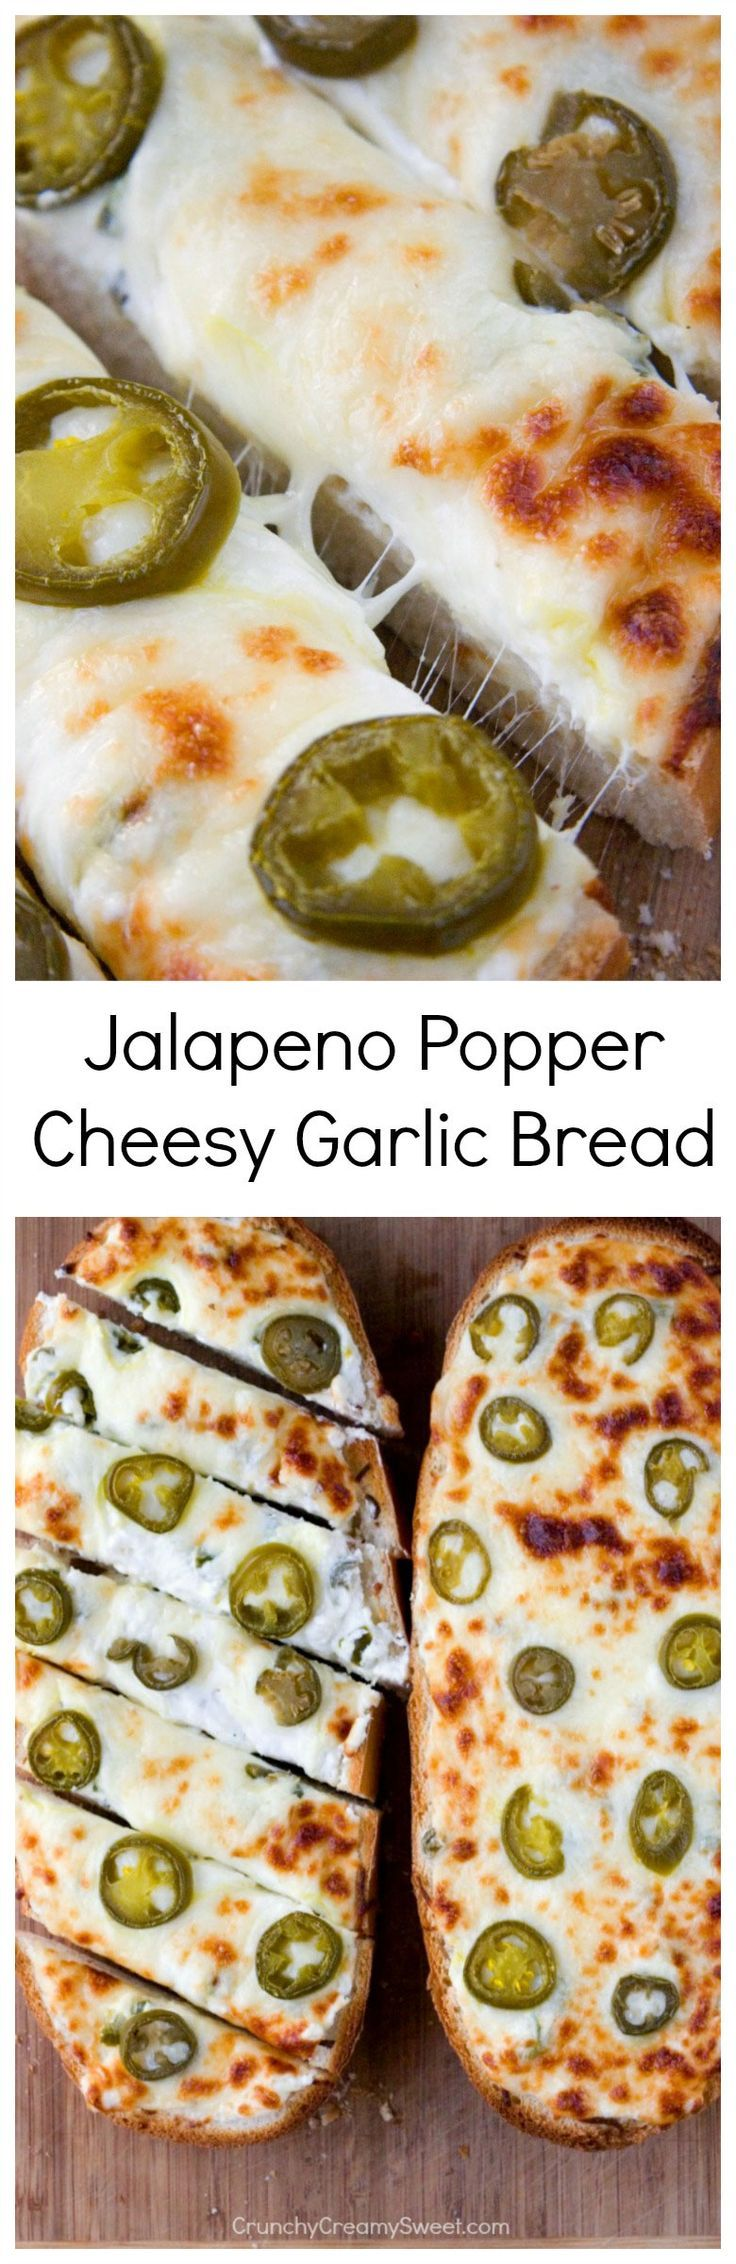 Jalapeno Popper Cheesy Garlic Bread - spicy take on our favorite cheesy garlic bread! You will love it! It's the perfect game day food! @CrunchyCreamySw